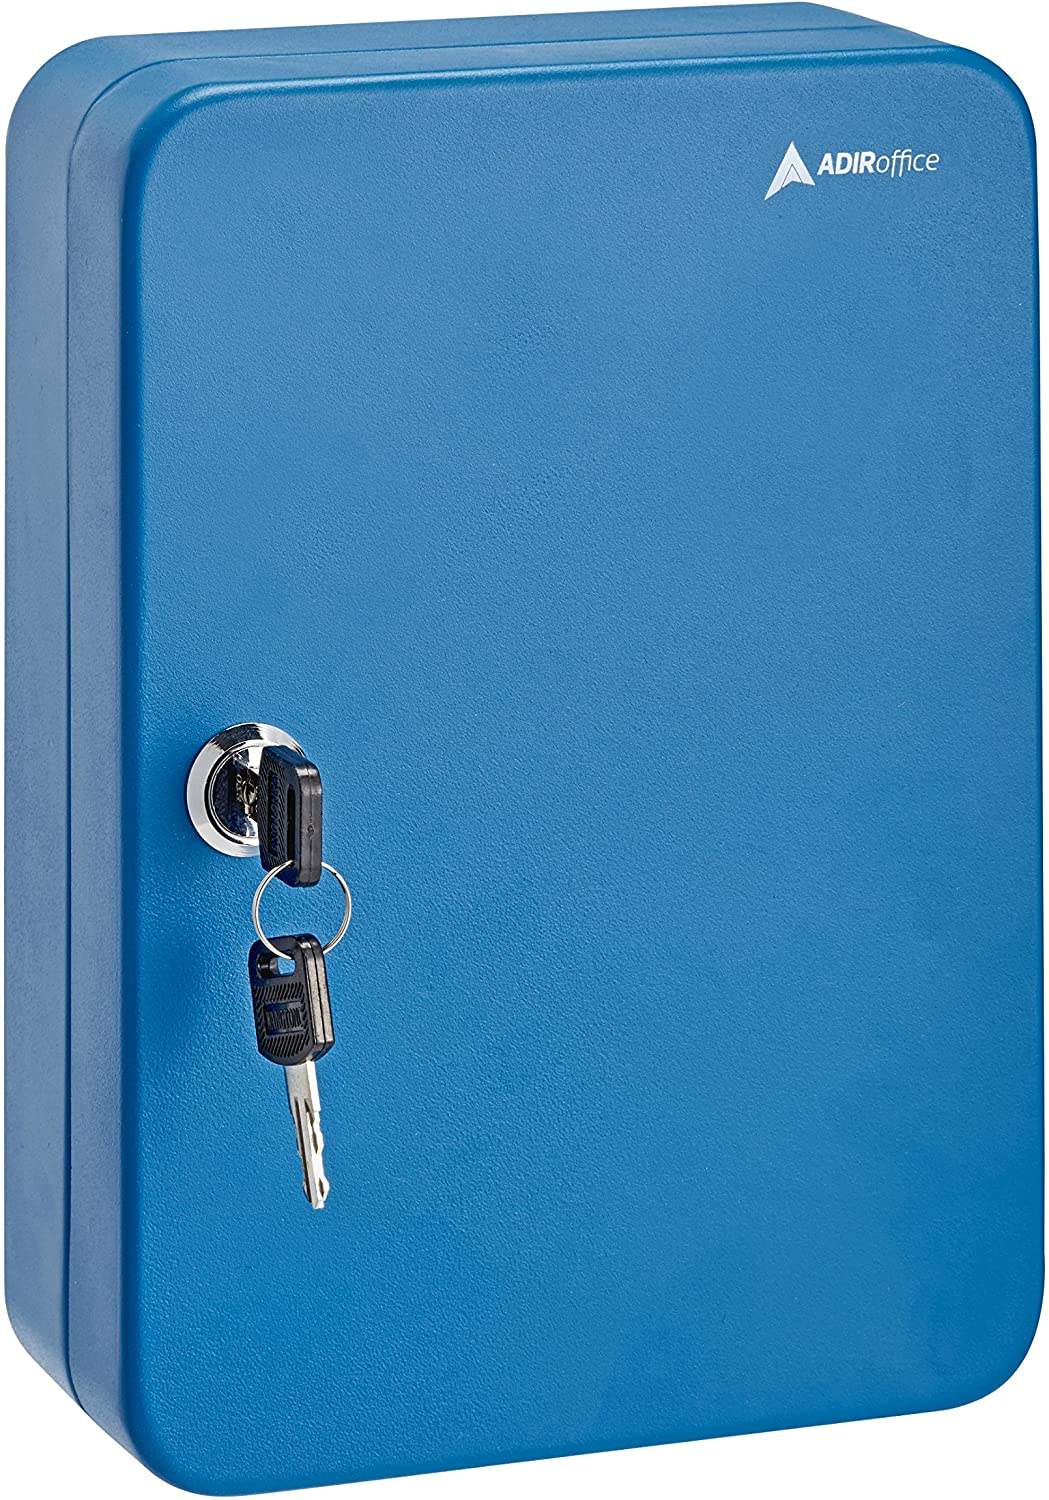 AdirOffice Key Steel Security Cabinet Box - 48 Keys Slots - Blue